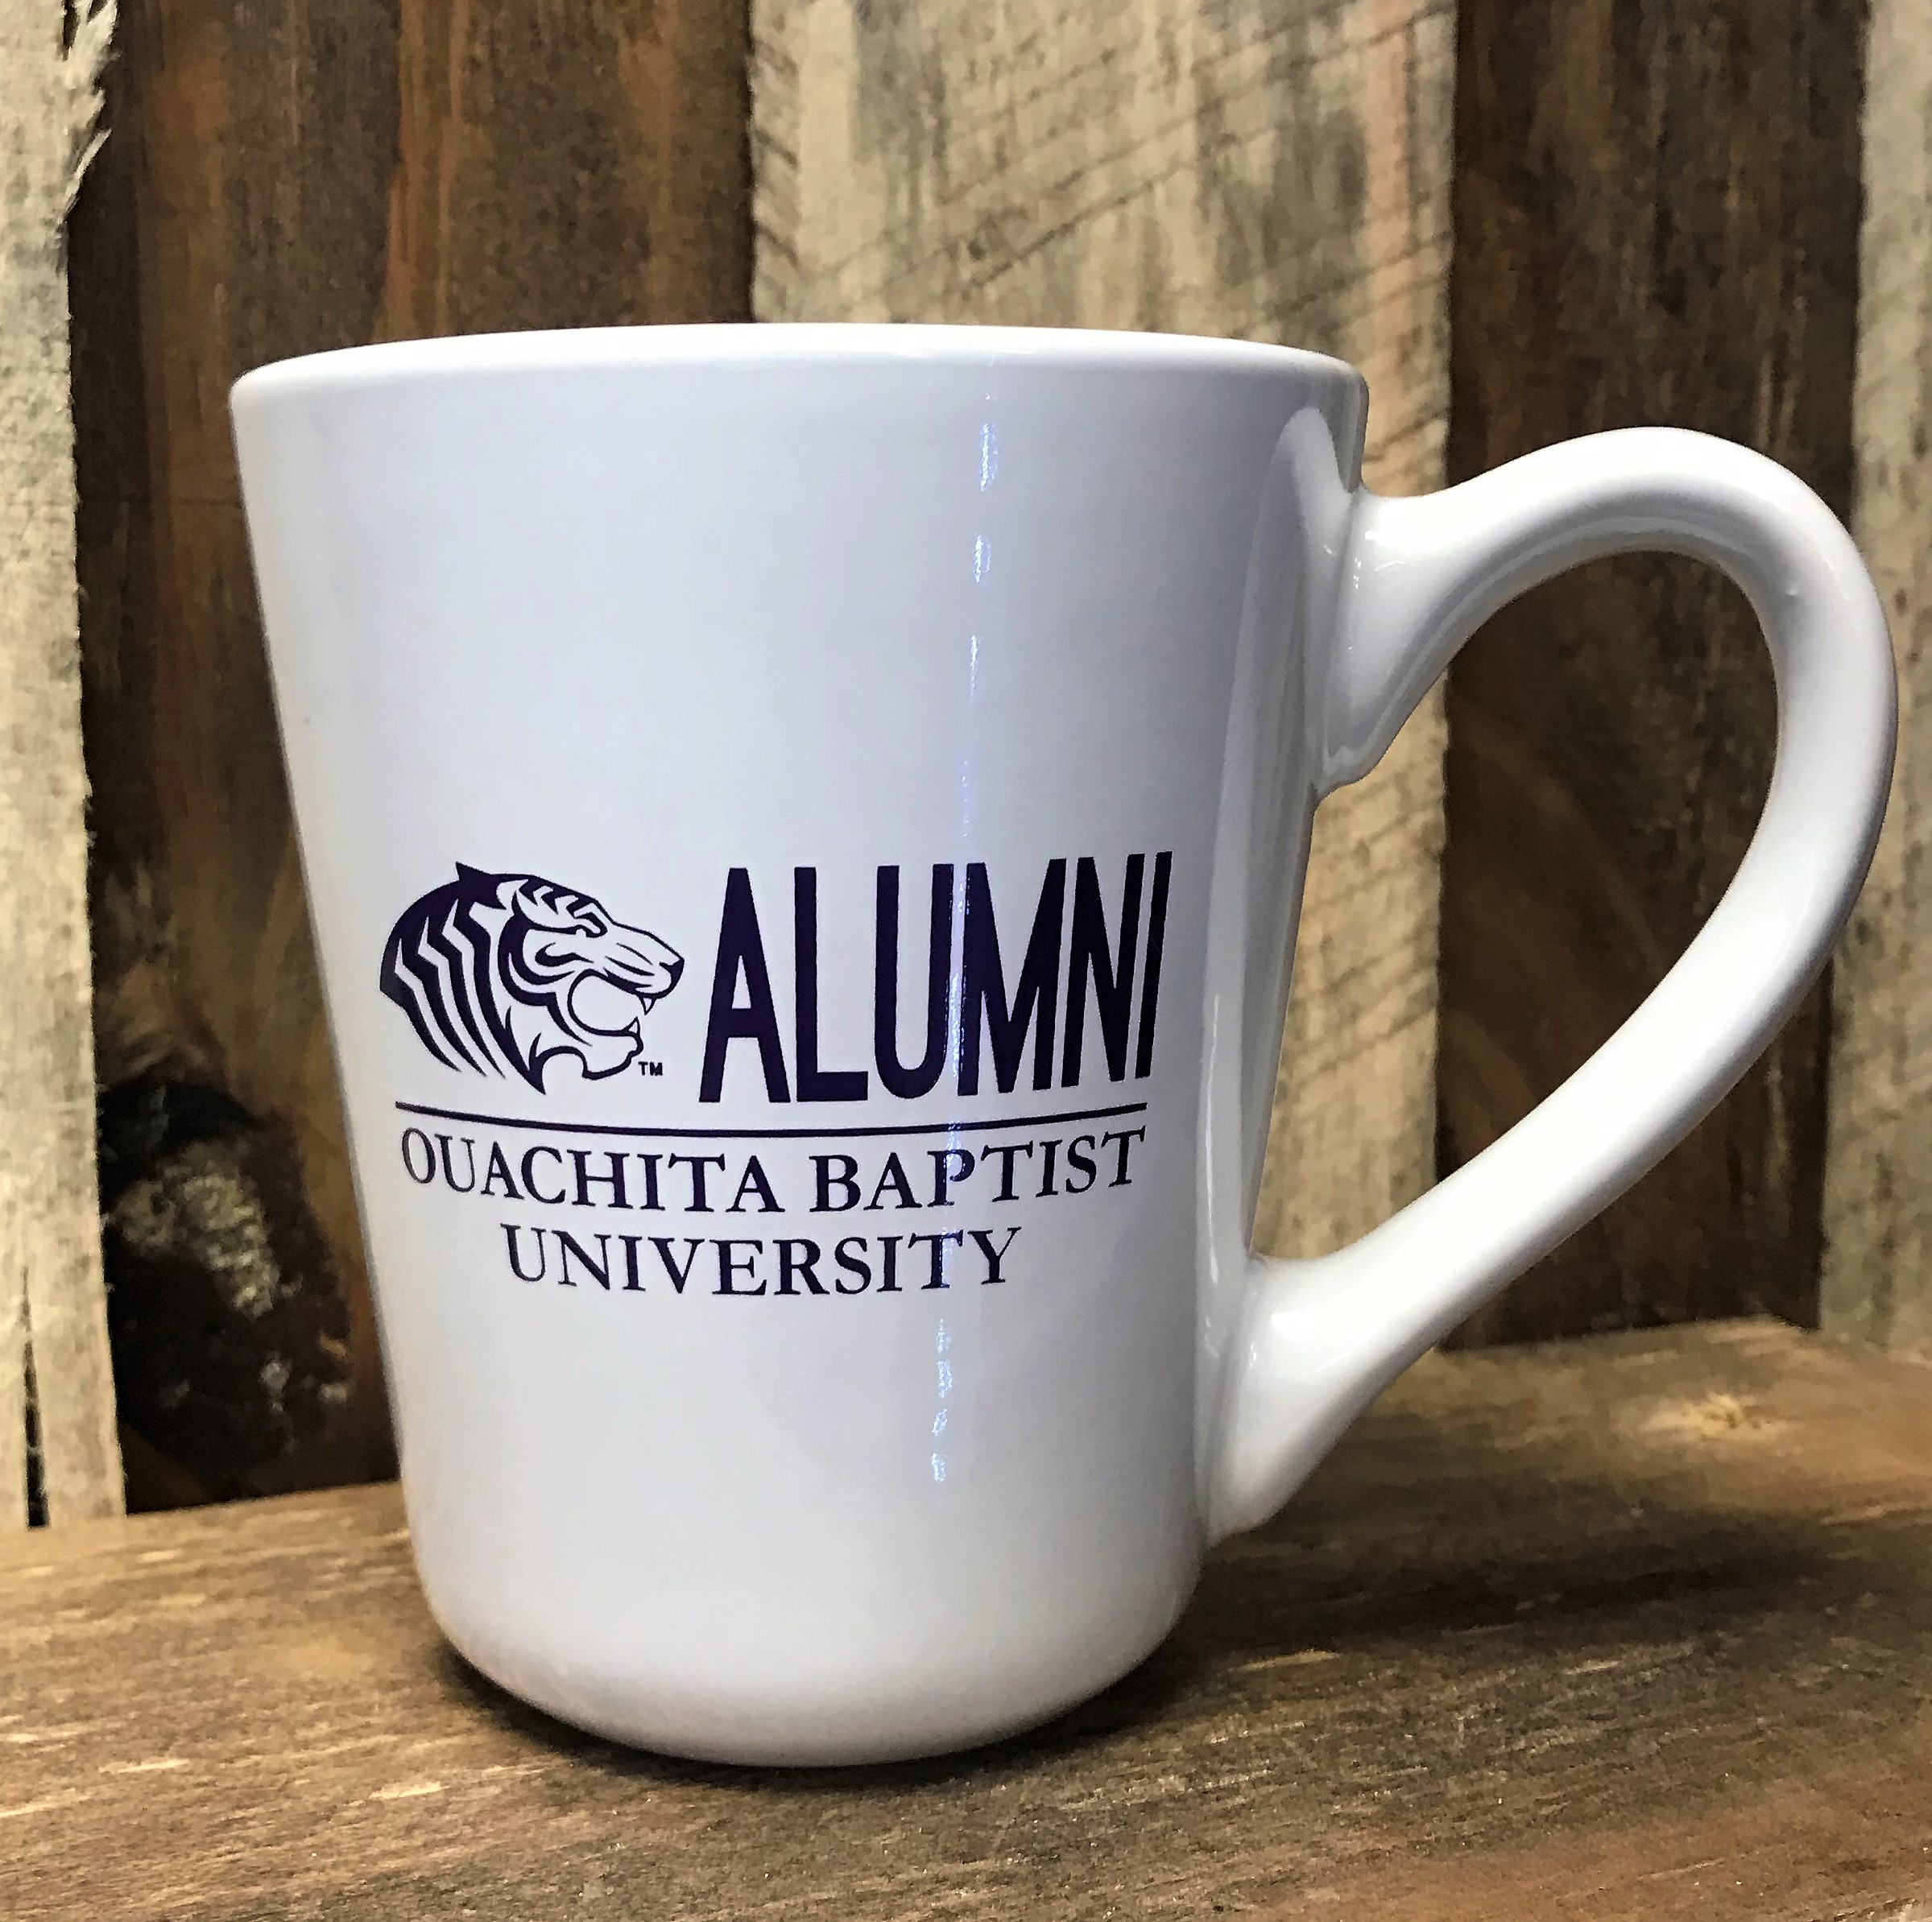 OUACHITA BAPTIST UNIVERSITY ALUMNI MUG